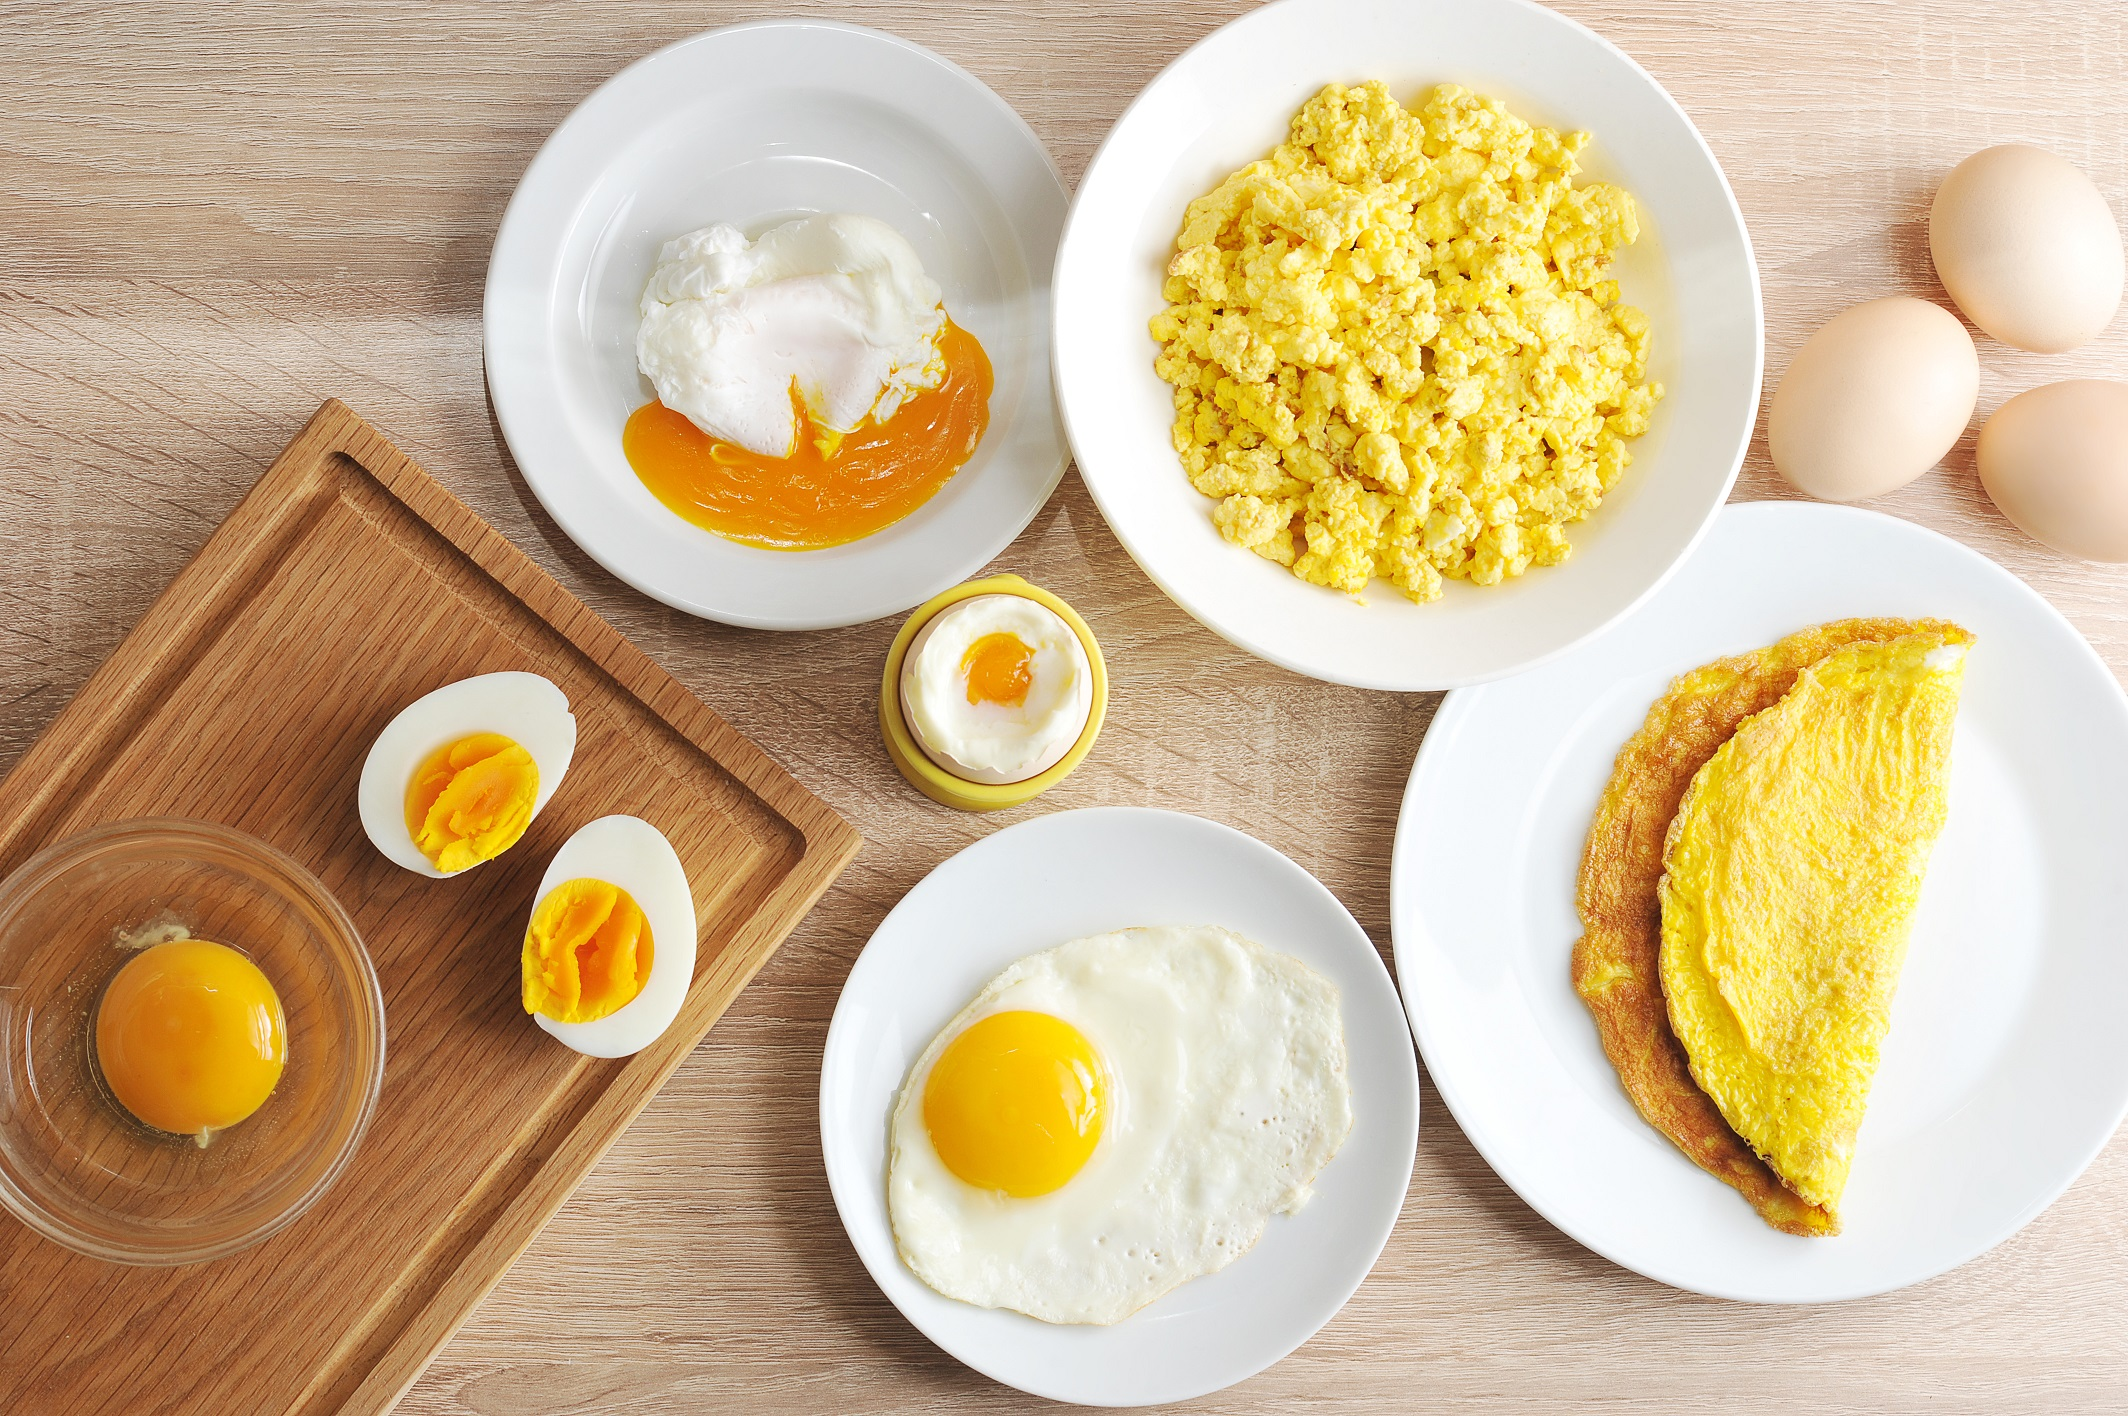 assortment of different styles of cooked eggs